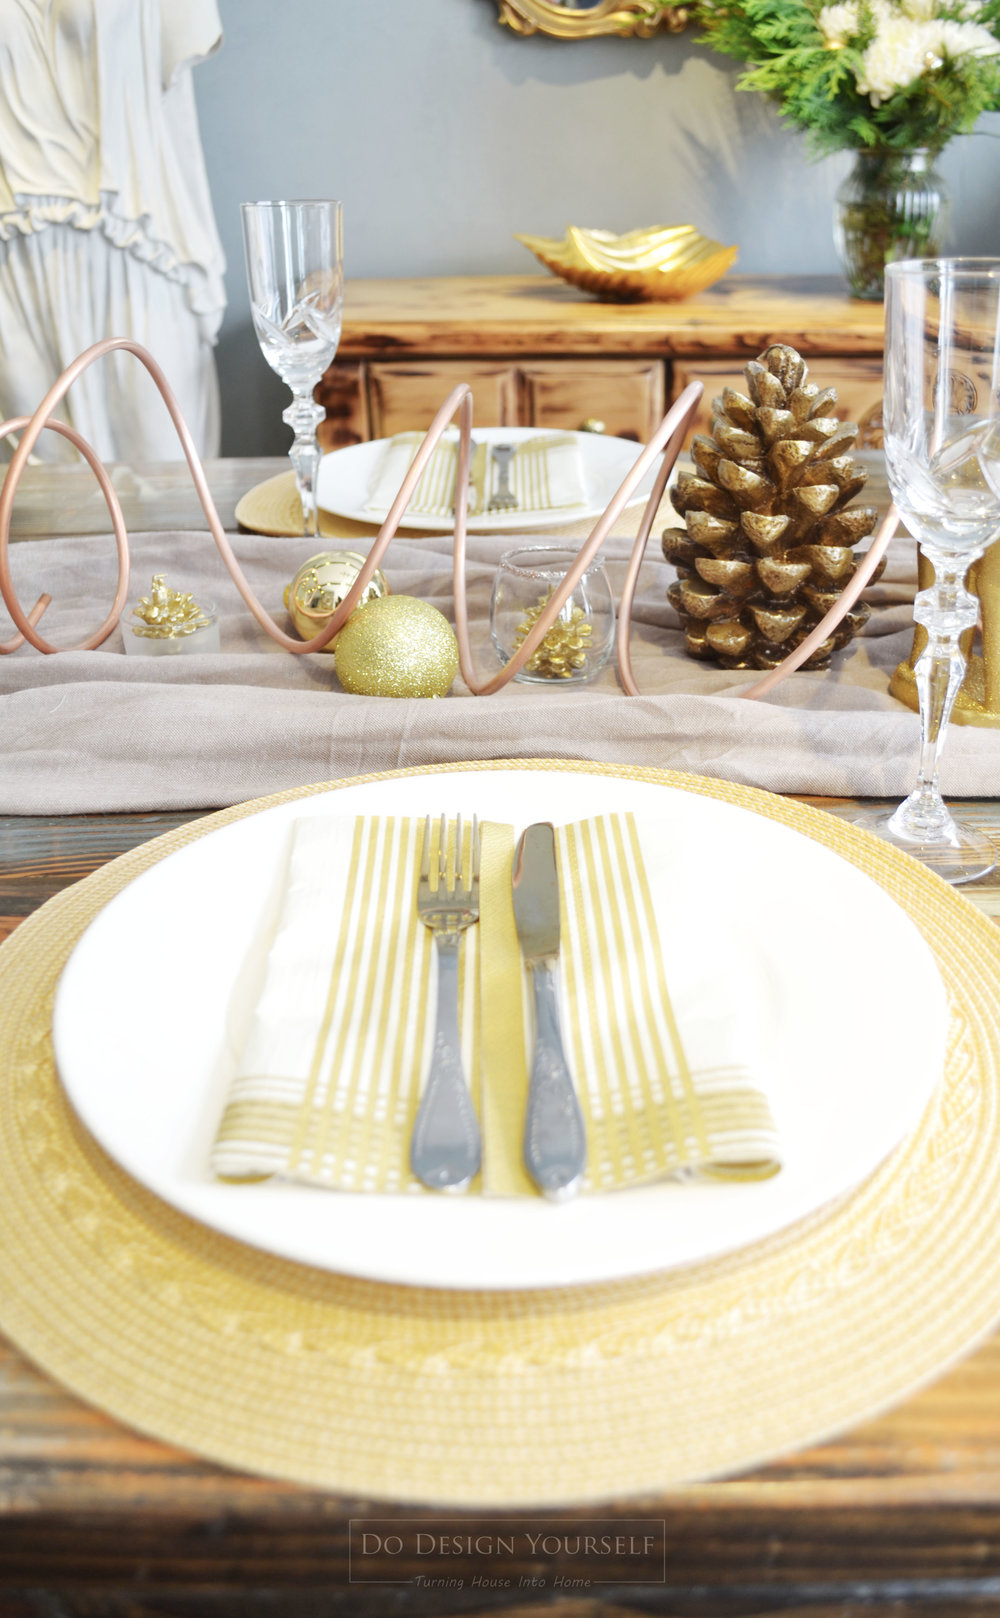 Looking for fun, yet elegant, Christmas table decor idea? see how to decorate on budget and mixing different metals - yellow and rose gold, silver, copper, and bronze.